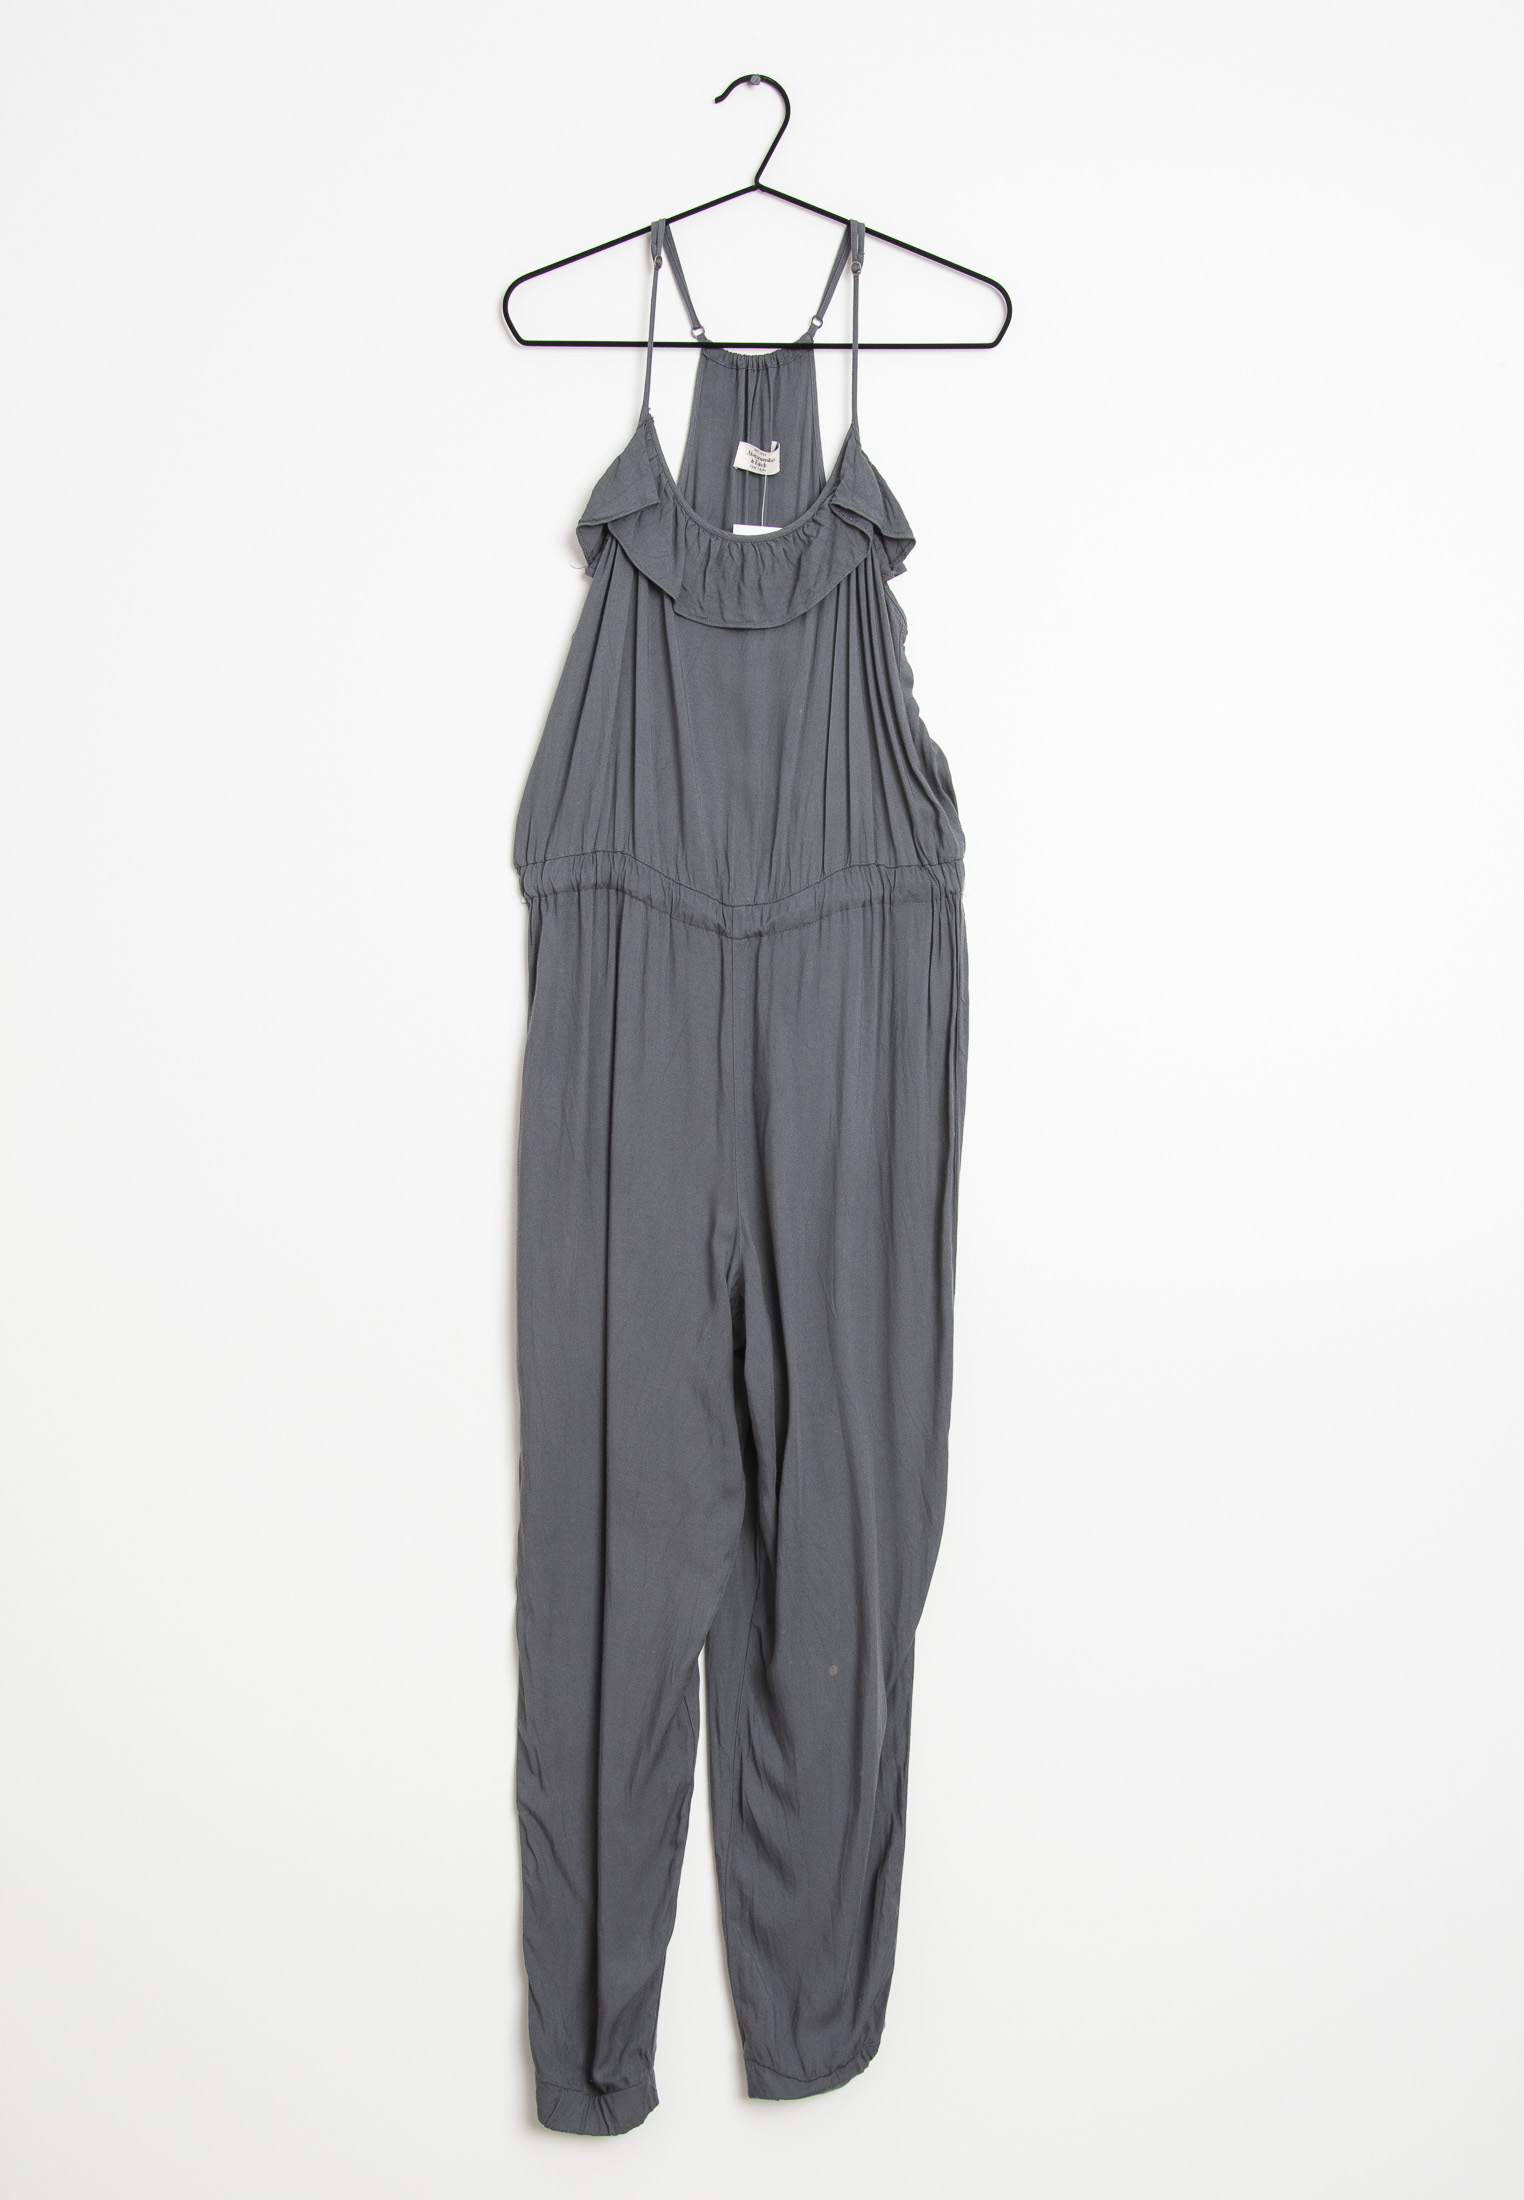 Abercrombie & Fitch Jumpsuit / Overall Grau Gr.L